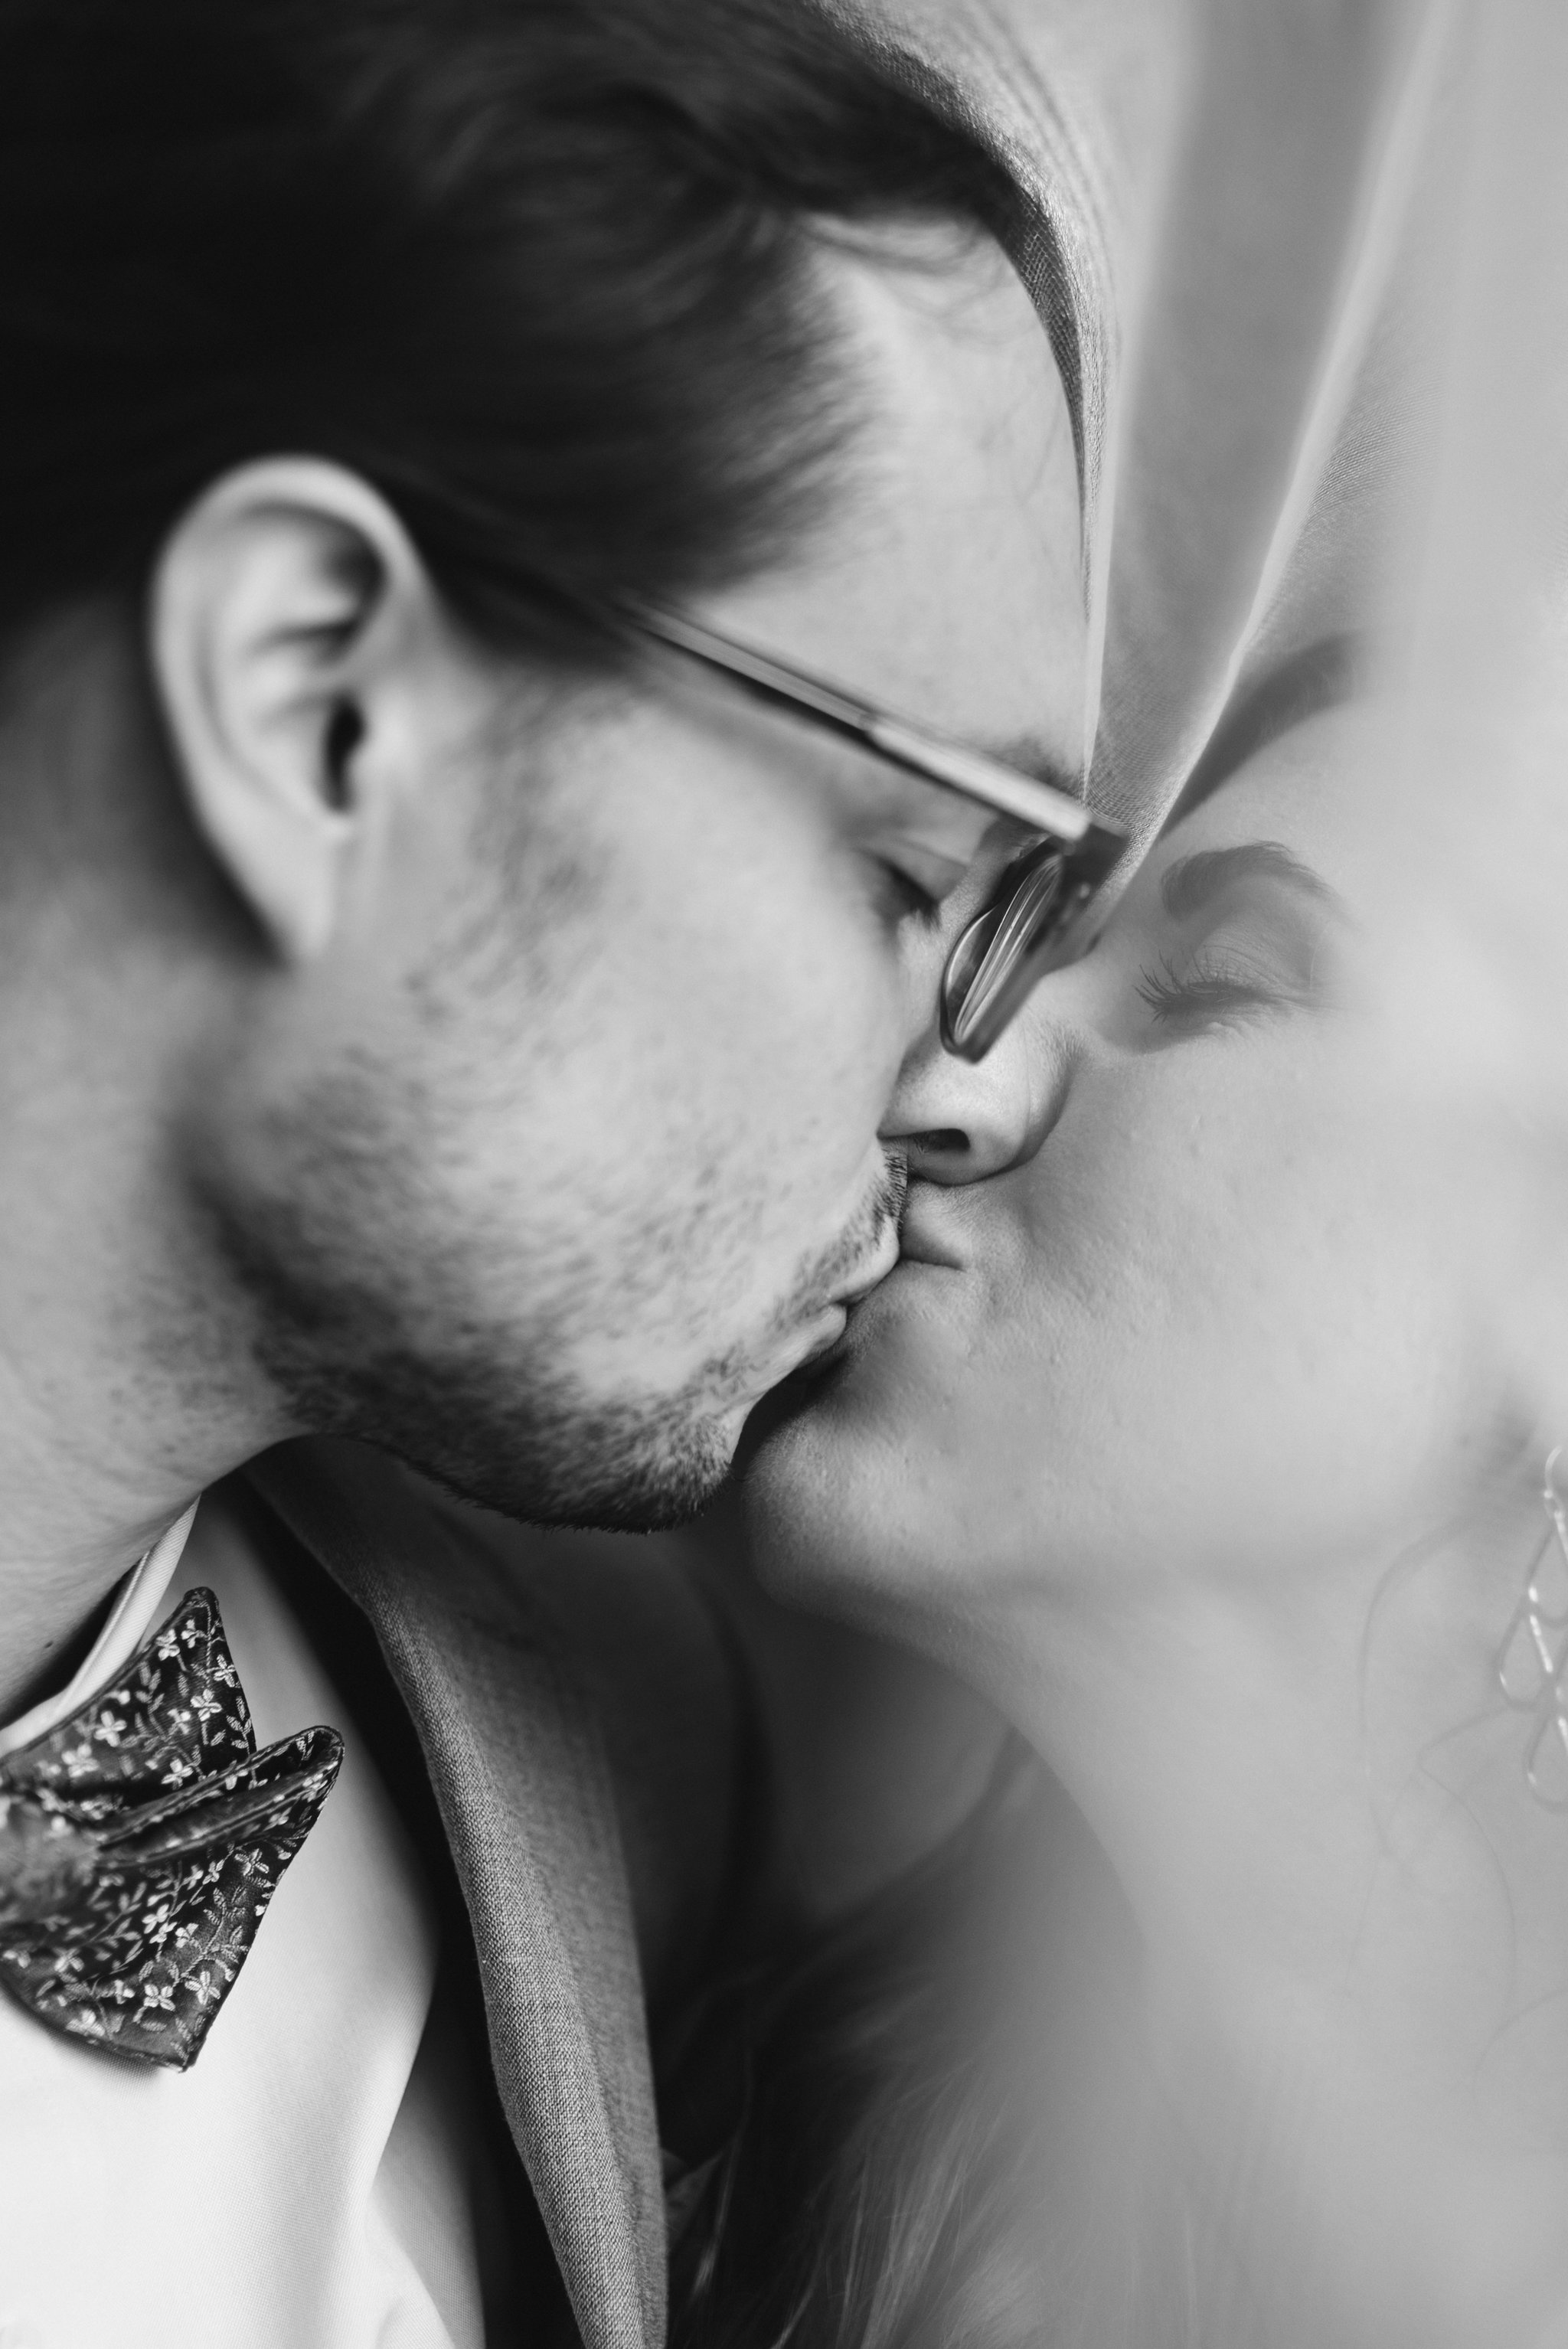 Annapolis, Quaker Wedding, Maryland Wedding Photographer, Intimate, Small Wedding, Vintage, DIY, Closeup of Bride and Groom Kissing, Black and White Photo